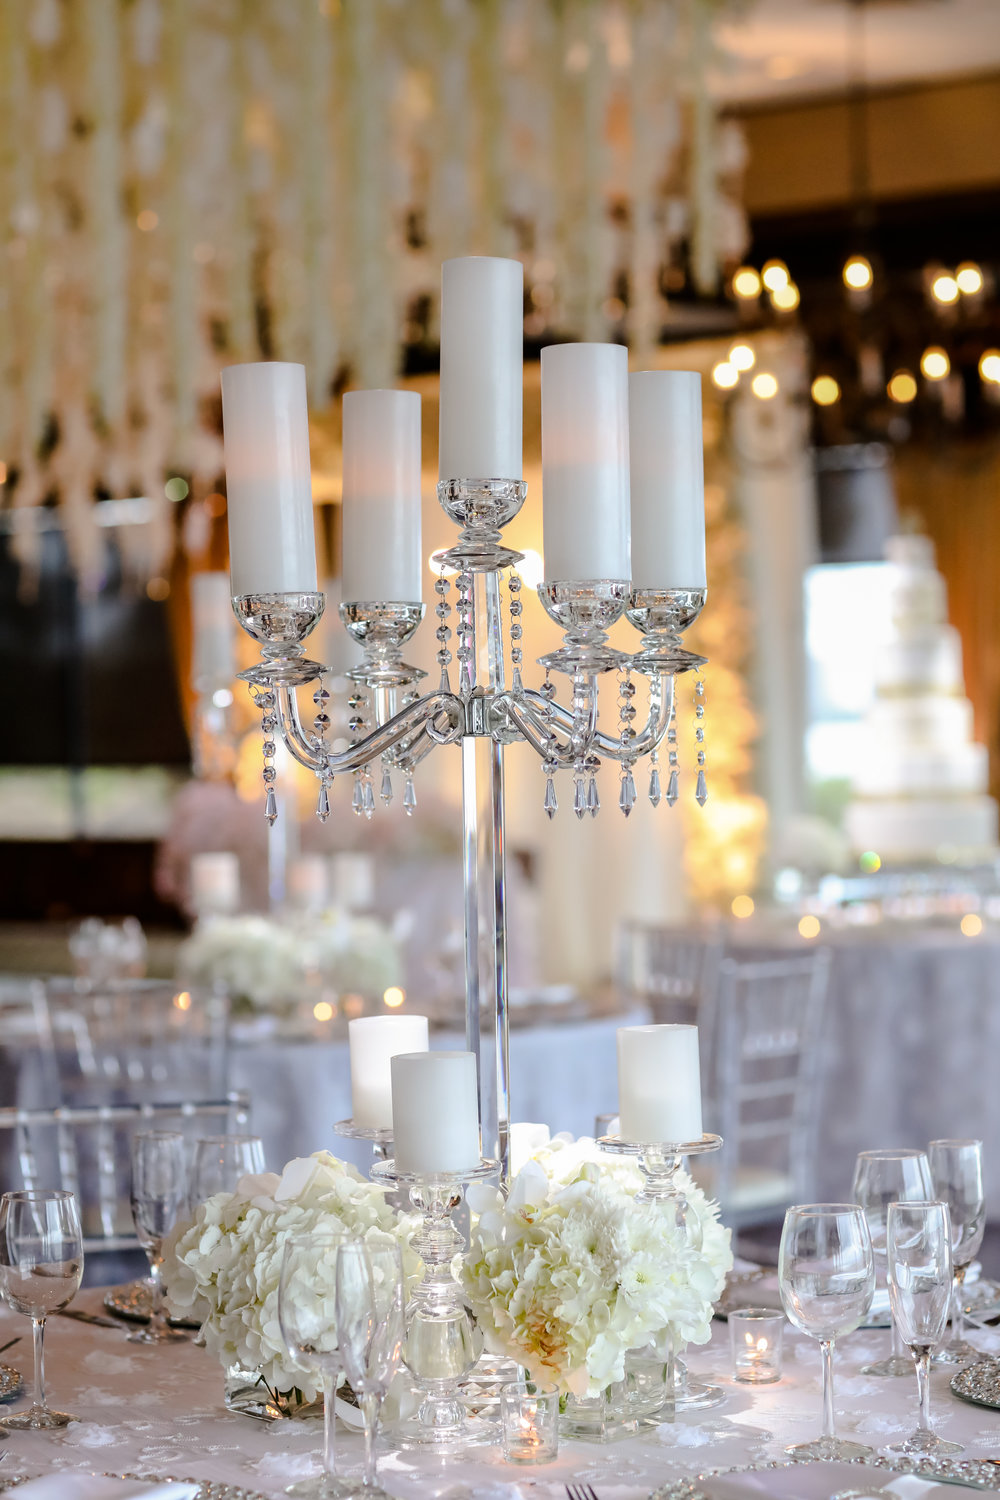 Alternating tables were topped with crystal candelabras, accented by floral arrangements and votives.